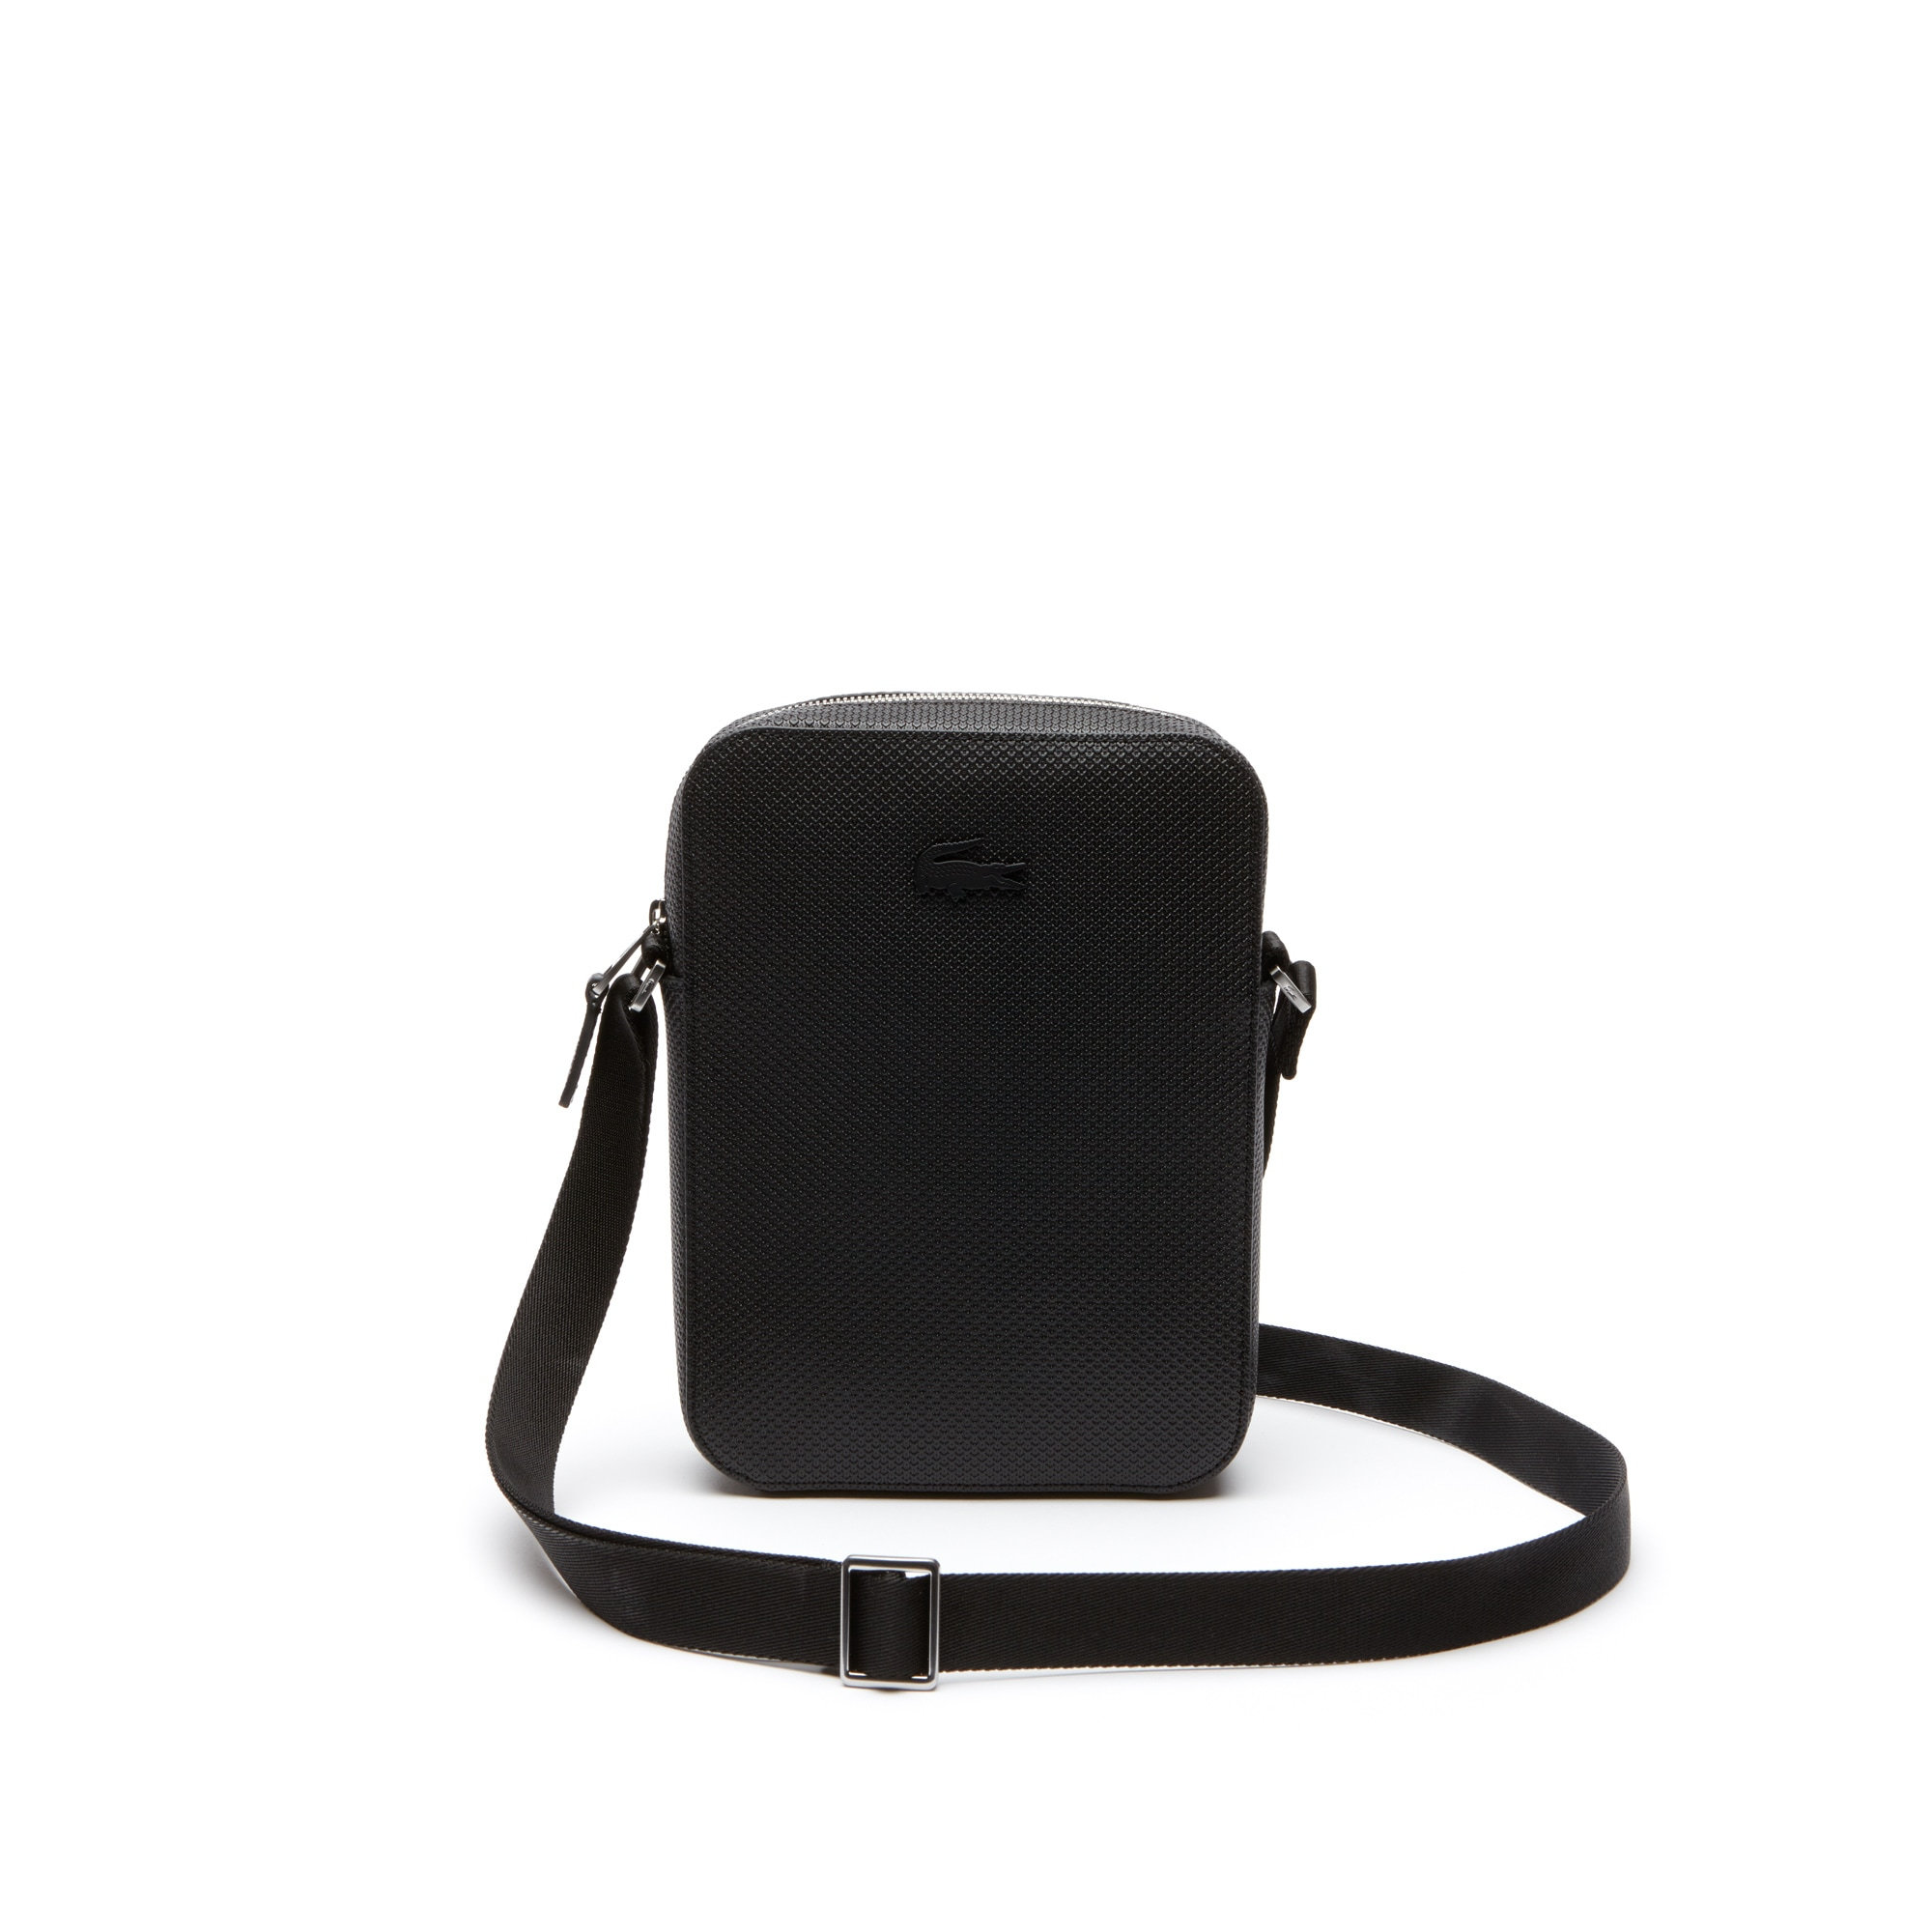 Backpacks bags for men leather goods lacoste - Sacoche lacoste homme pas cher ...